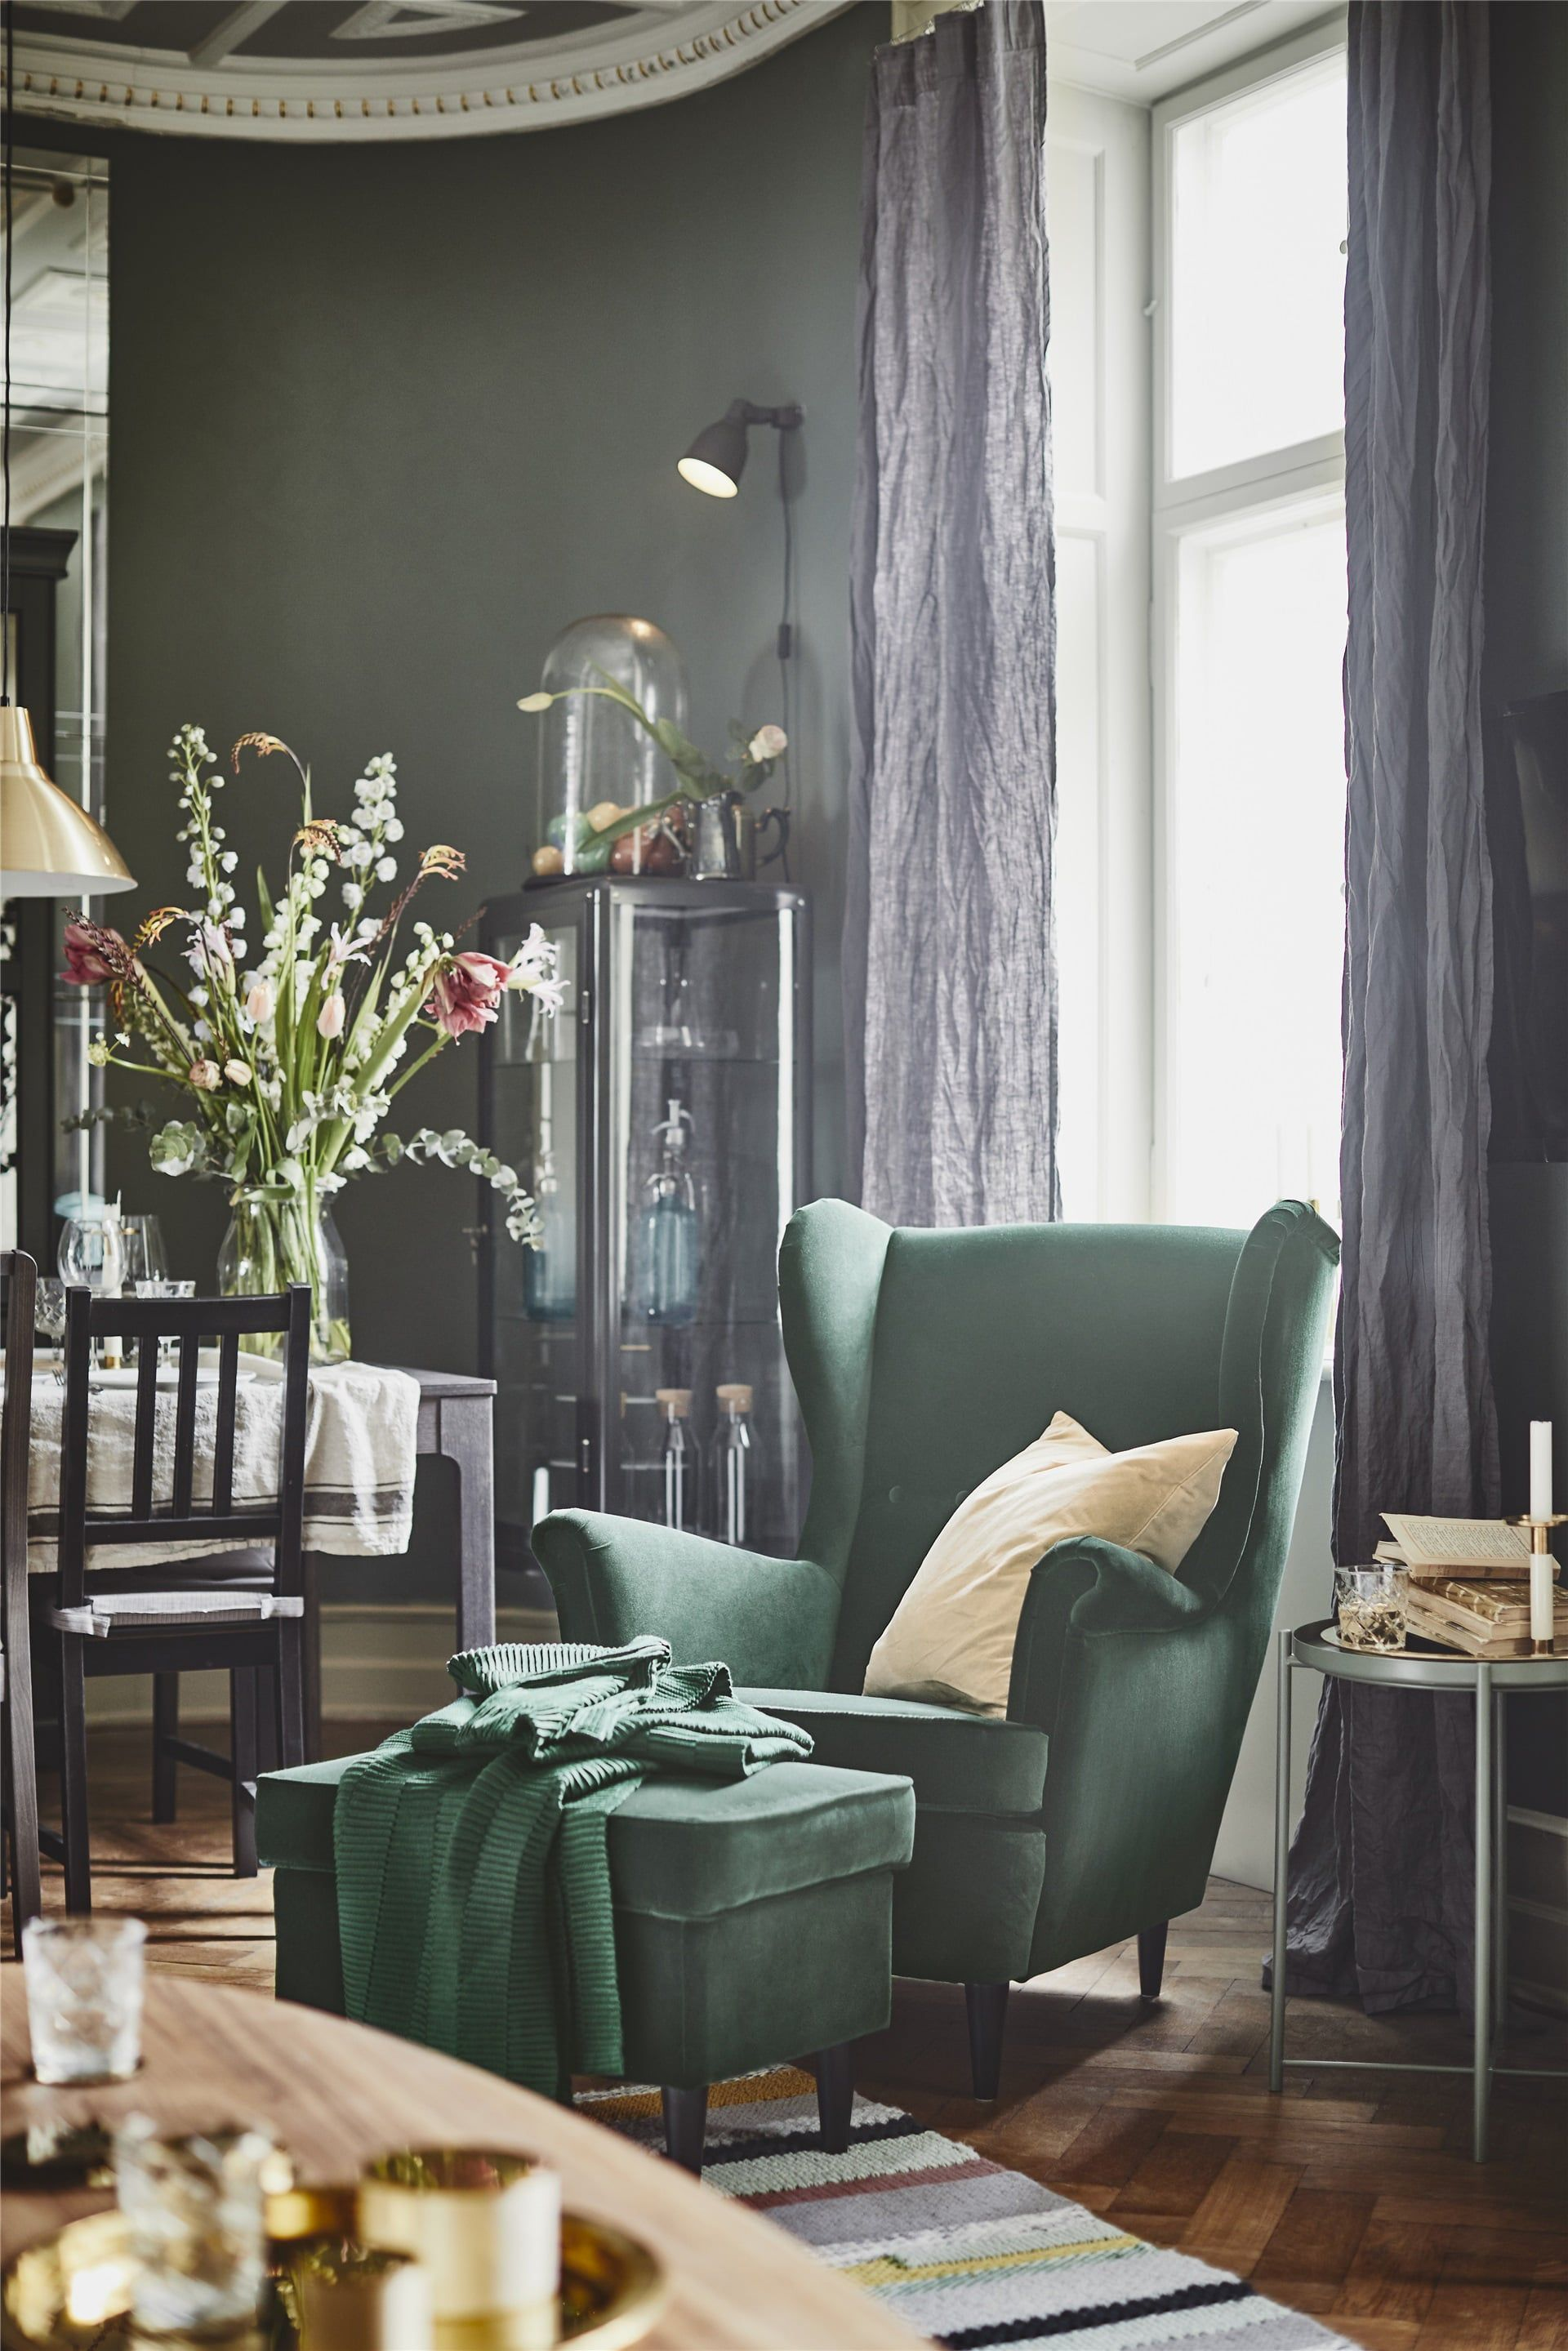 Ikea gave us a glimpse of its products and redecorating never